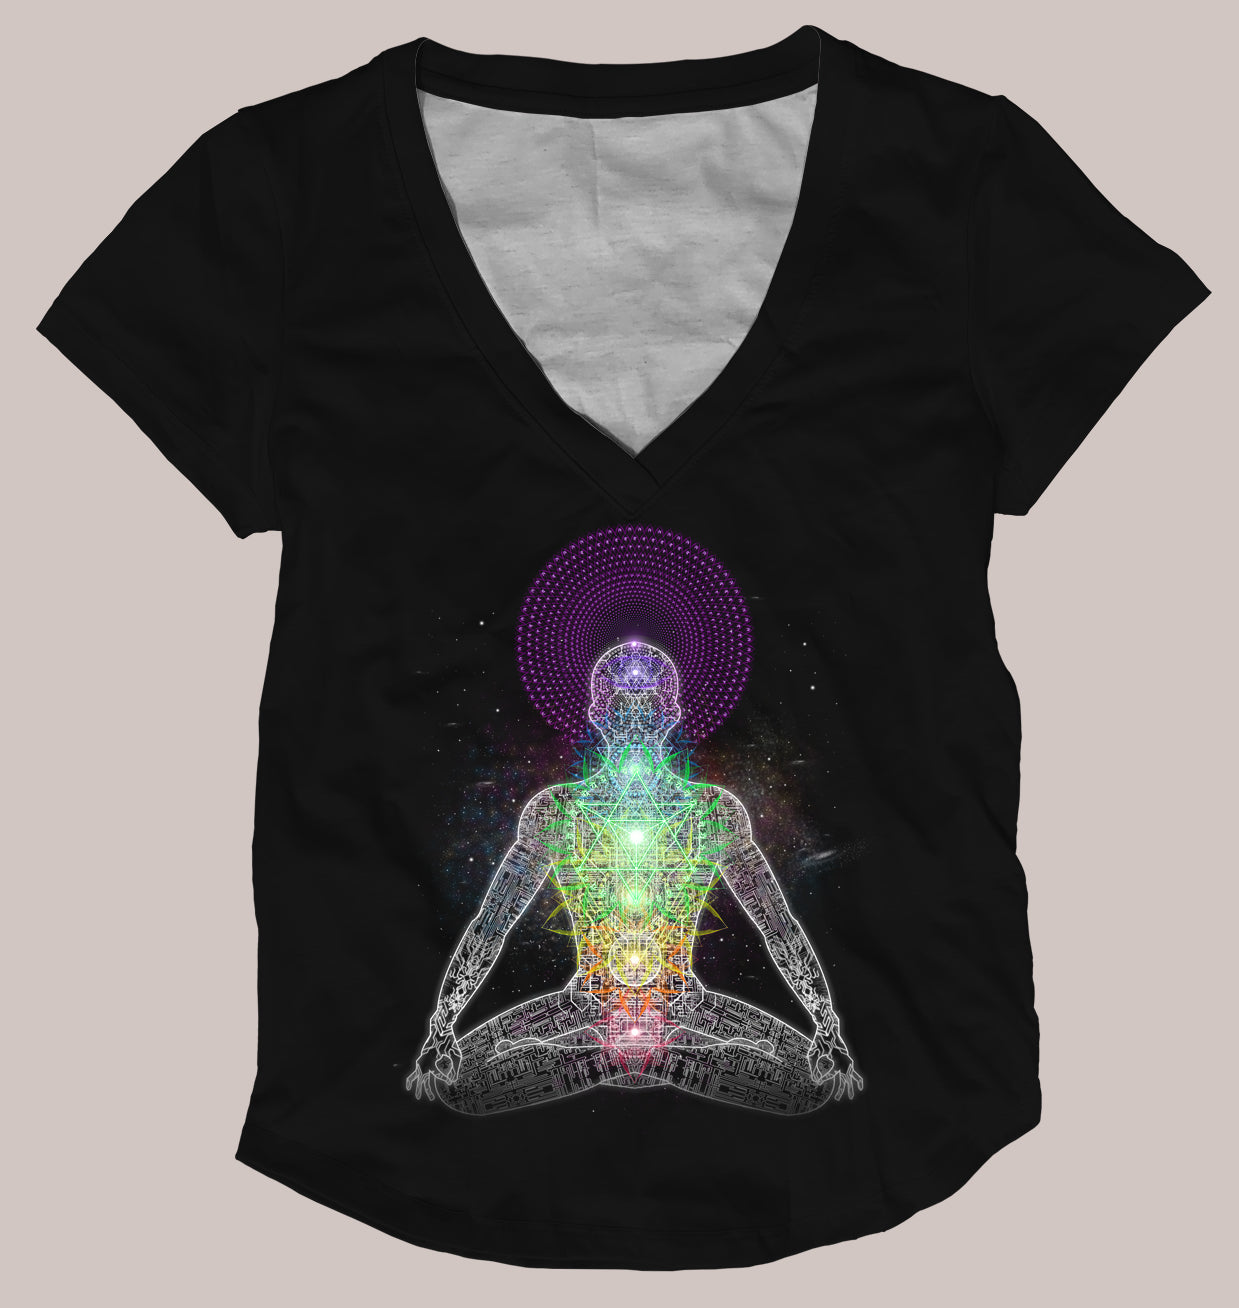 Inner Galactic Women's Signature Shirt - Tetramode® | Psy Styles. Men & Womens Psychedelic Tops & Bottoms